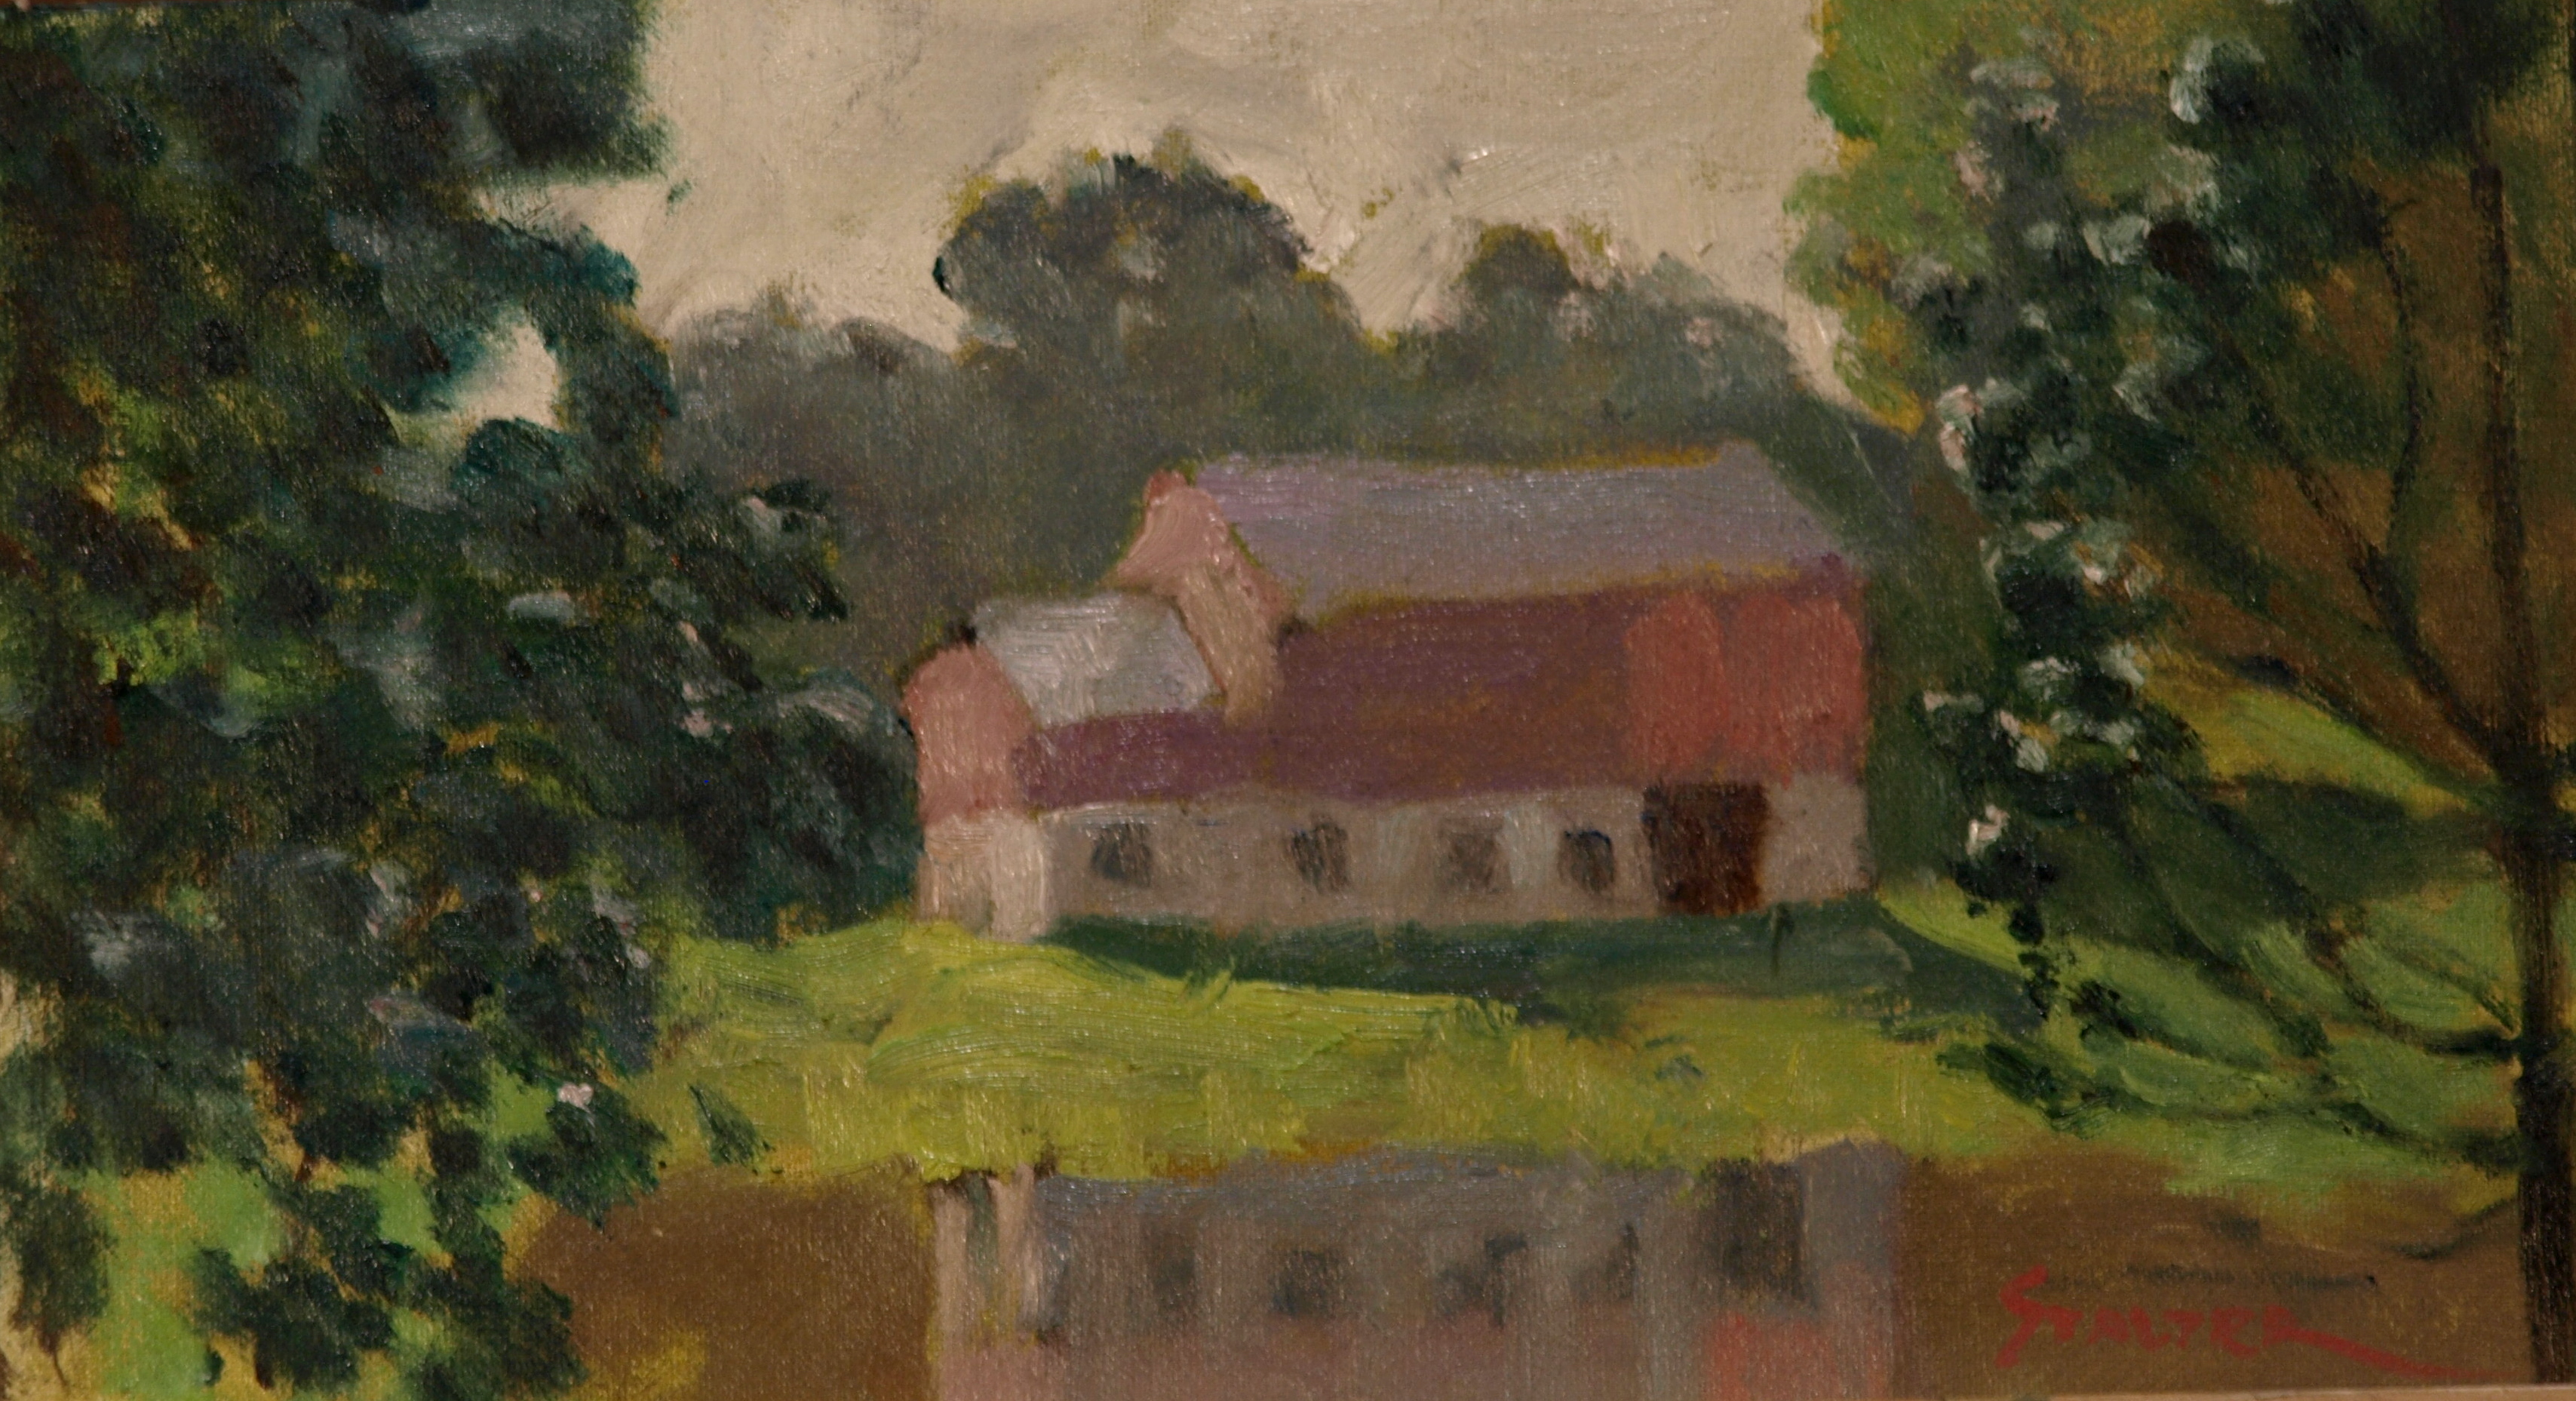 Reflected Barn, Oil on Canvas on Panel, 8 x 14 Inches, by Richard Stalter, $225